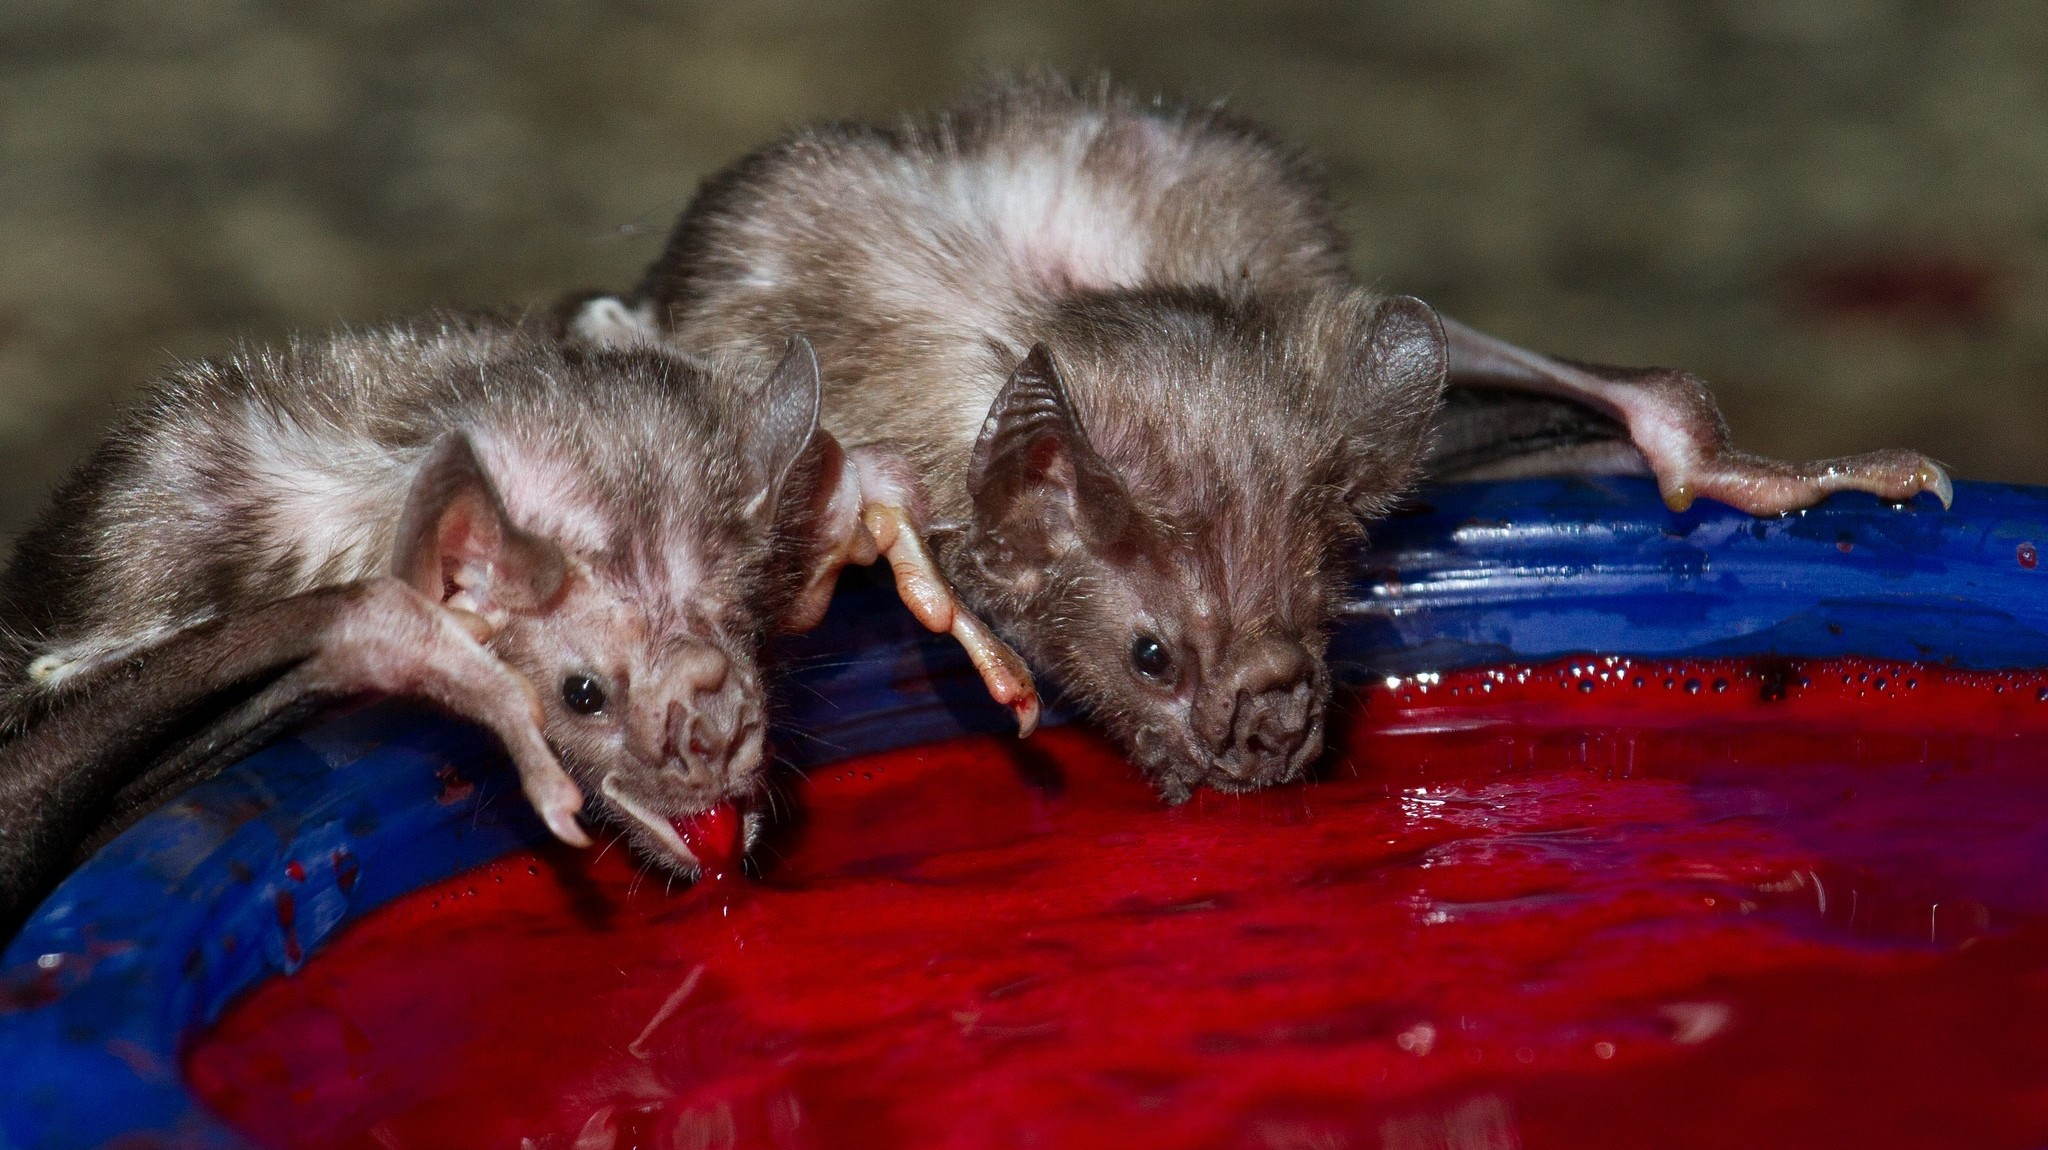 Bat V ire Gnu in addition Animal Study Aniya furthermore White Nose Syndrome In L Br Bats furthermore  in addition Inline Sydney Operahouse. on bats an animal study